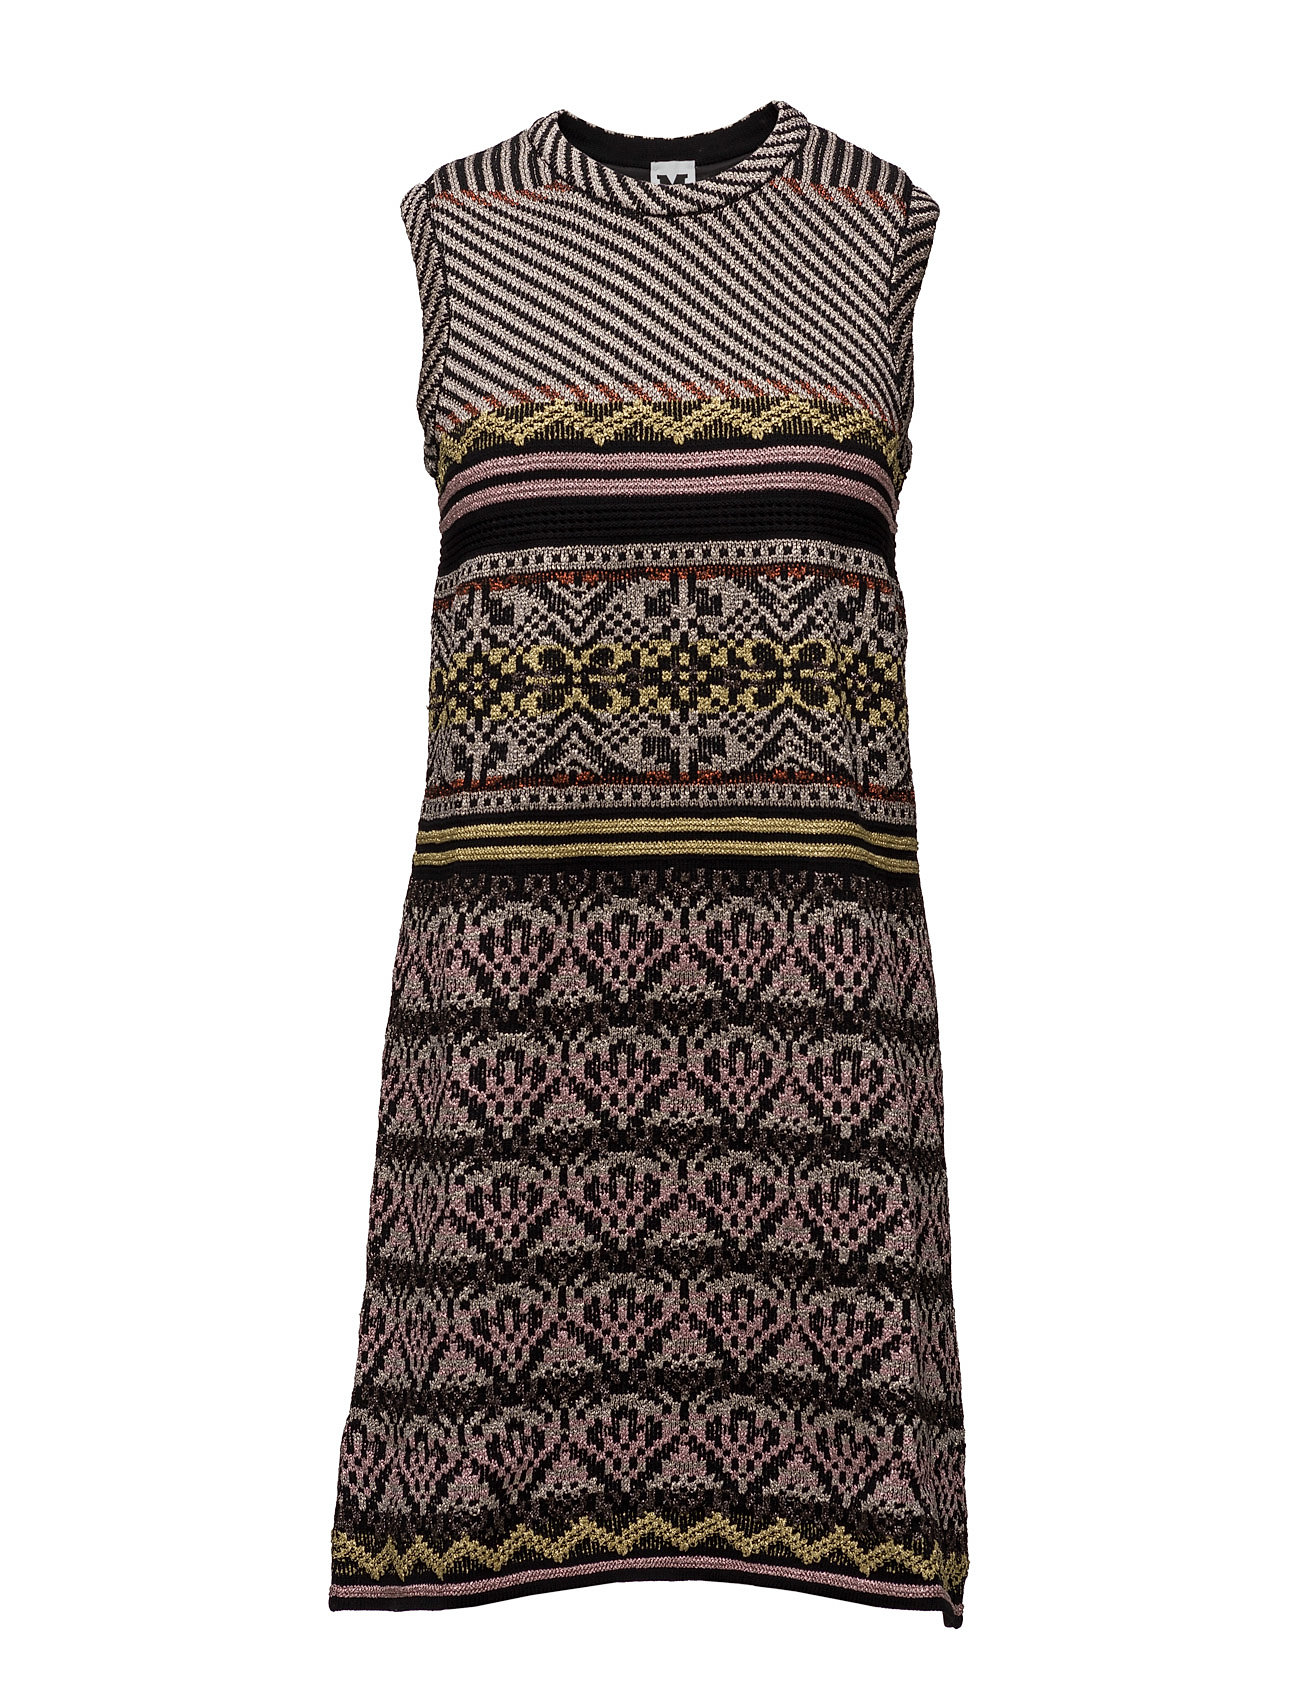 m missoni – M missoni-dress knitted på boozt.com dk